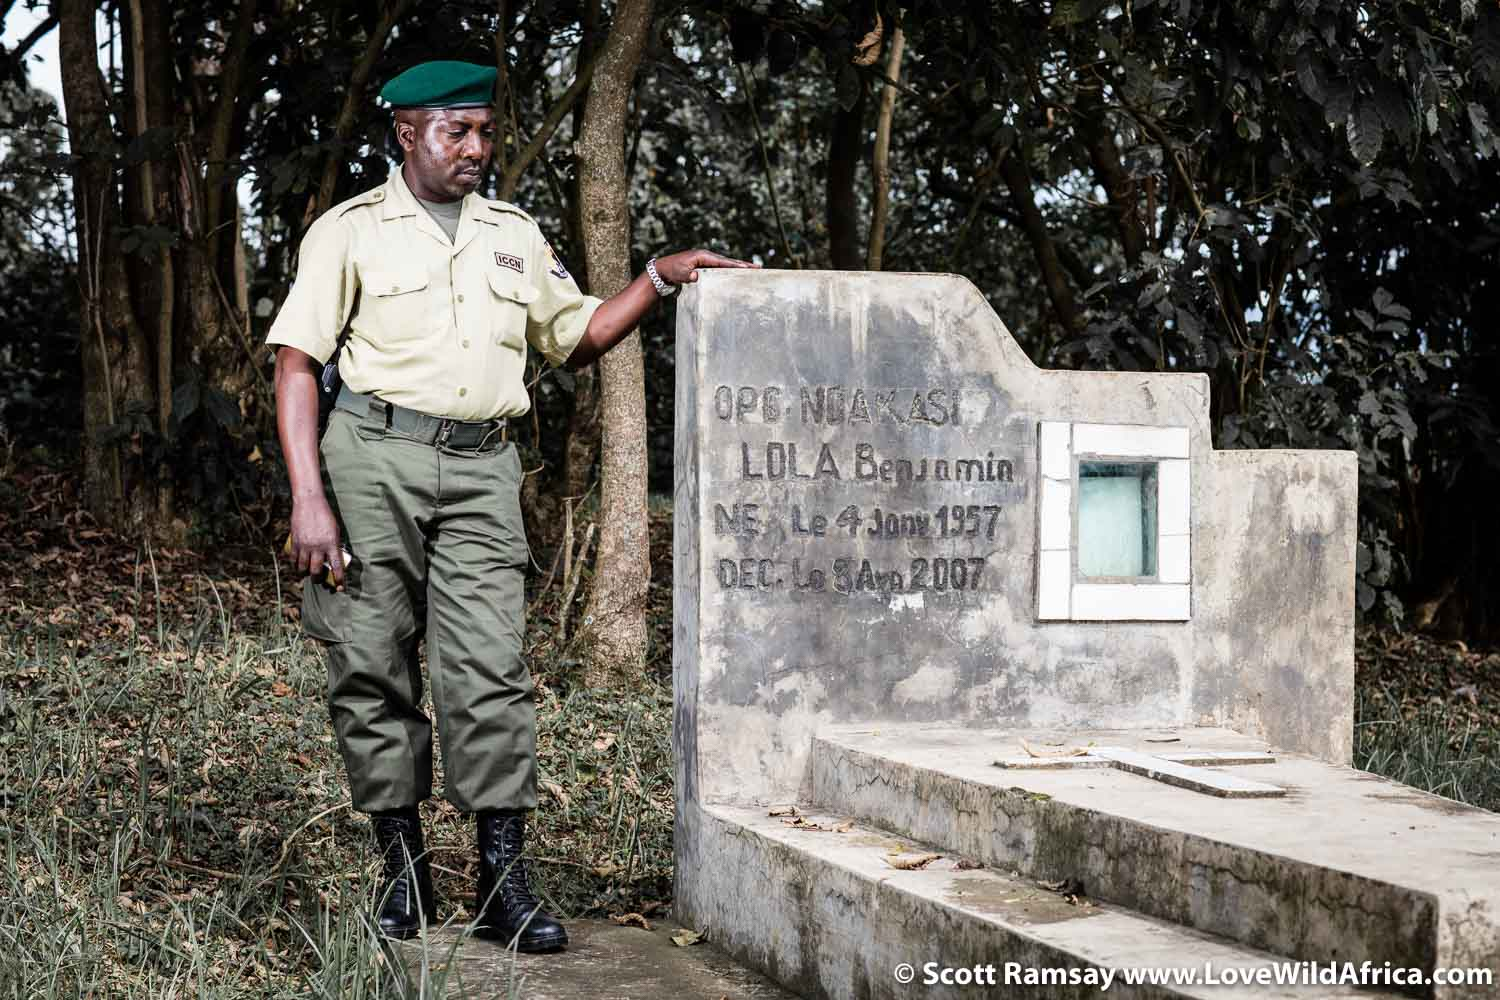 Mburanumwe showed me the grave of Ranger Benjamin Ndakasi Lola, who was the chief gorilla monitor in Virunga for eight years, from 1999 to his death from diabetes in 2007. There is a noticeably proud tradition of conservation in eastern DRC, and Virunga's rangers are clearly loyal to each other, and the park and it's local people. I felt privileged to spend a bit of time with Mburanumwe.